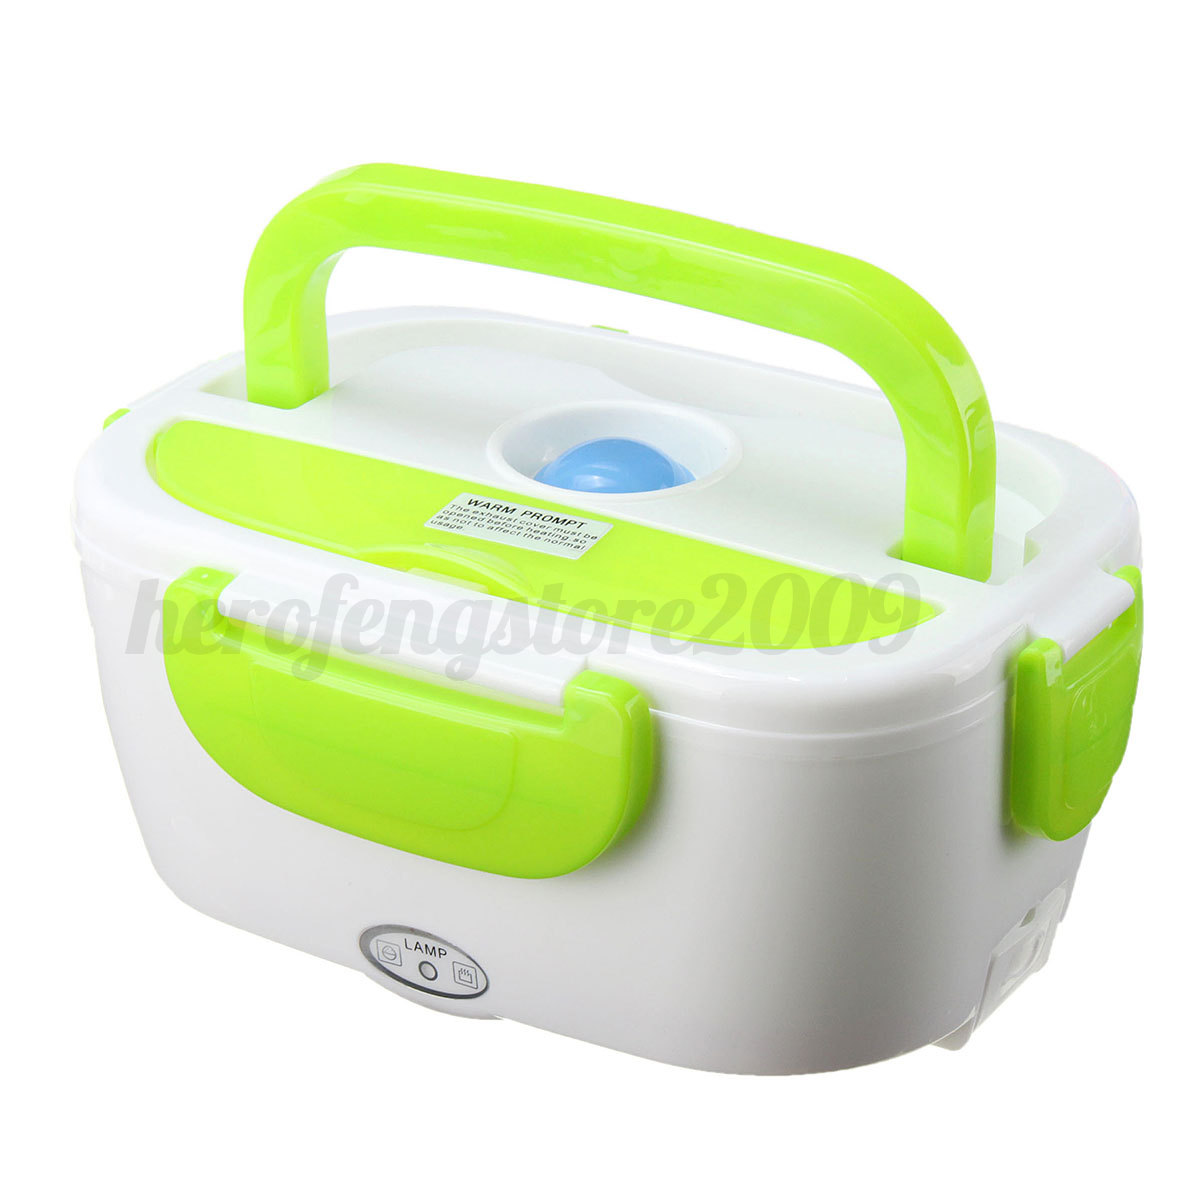 portable car plug electric heating lunch box bento healthy food warmer container ebay. Black Bedroom Furniture Sets. Home Design Ideas